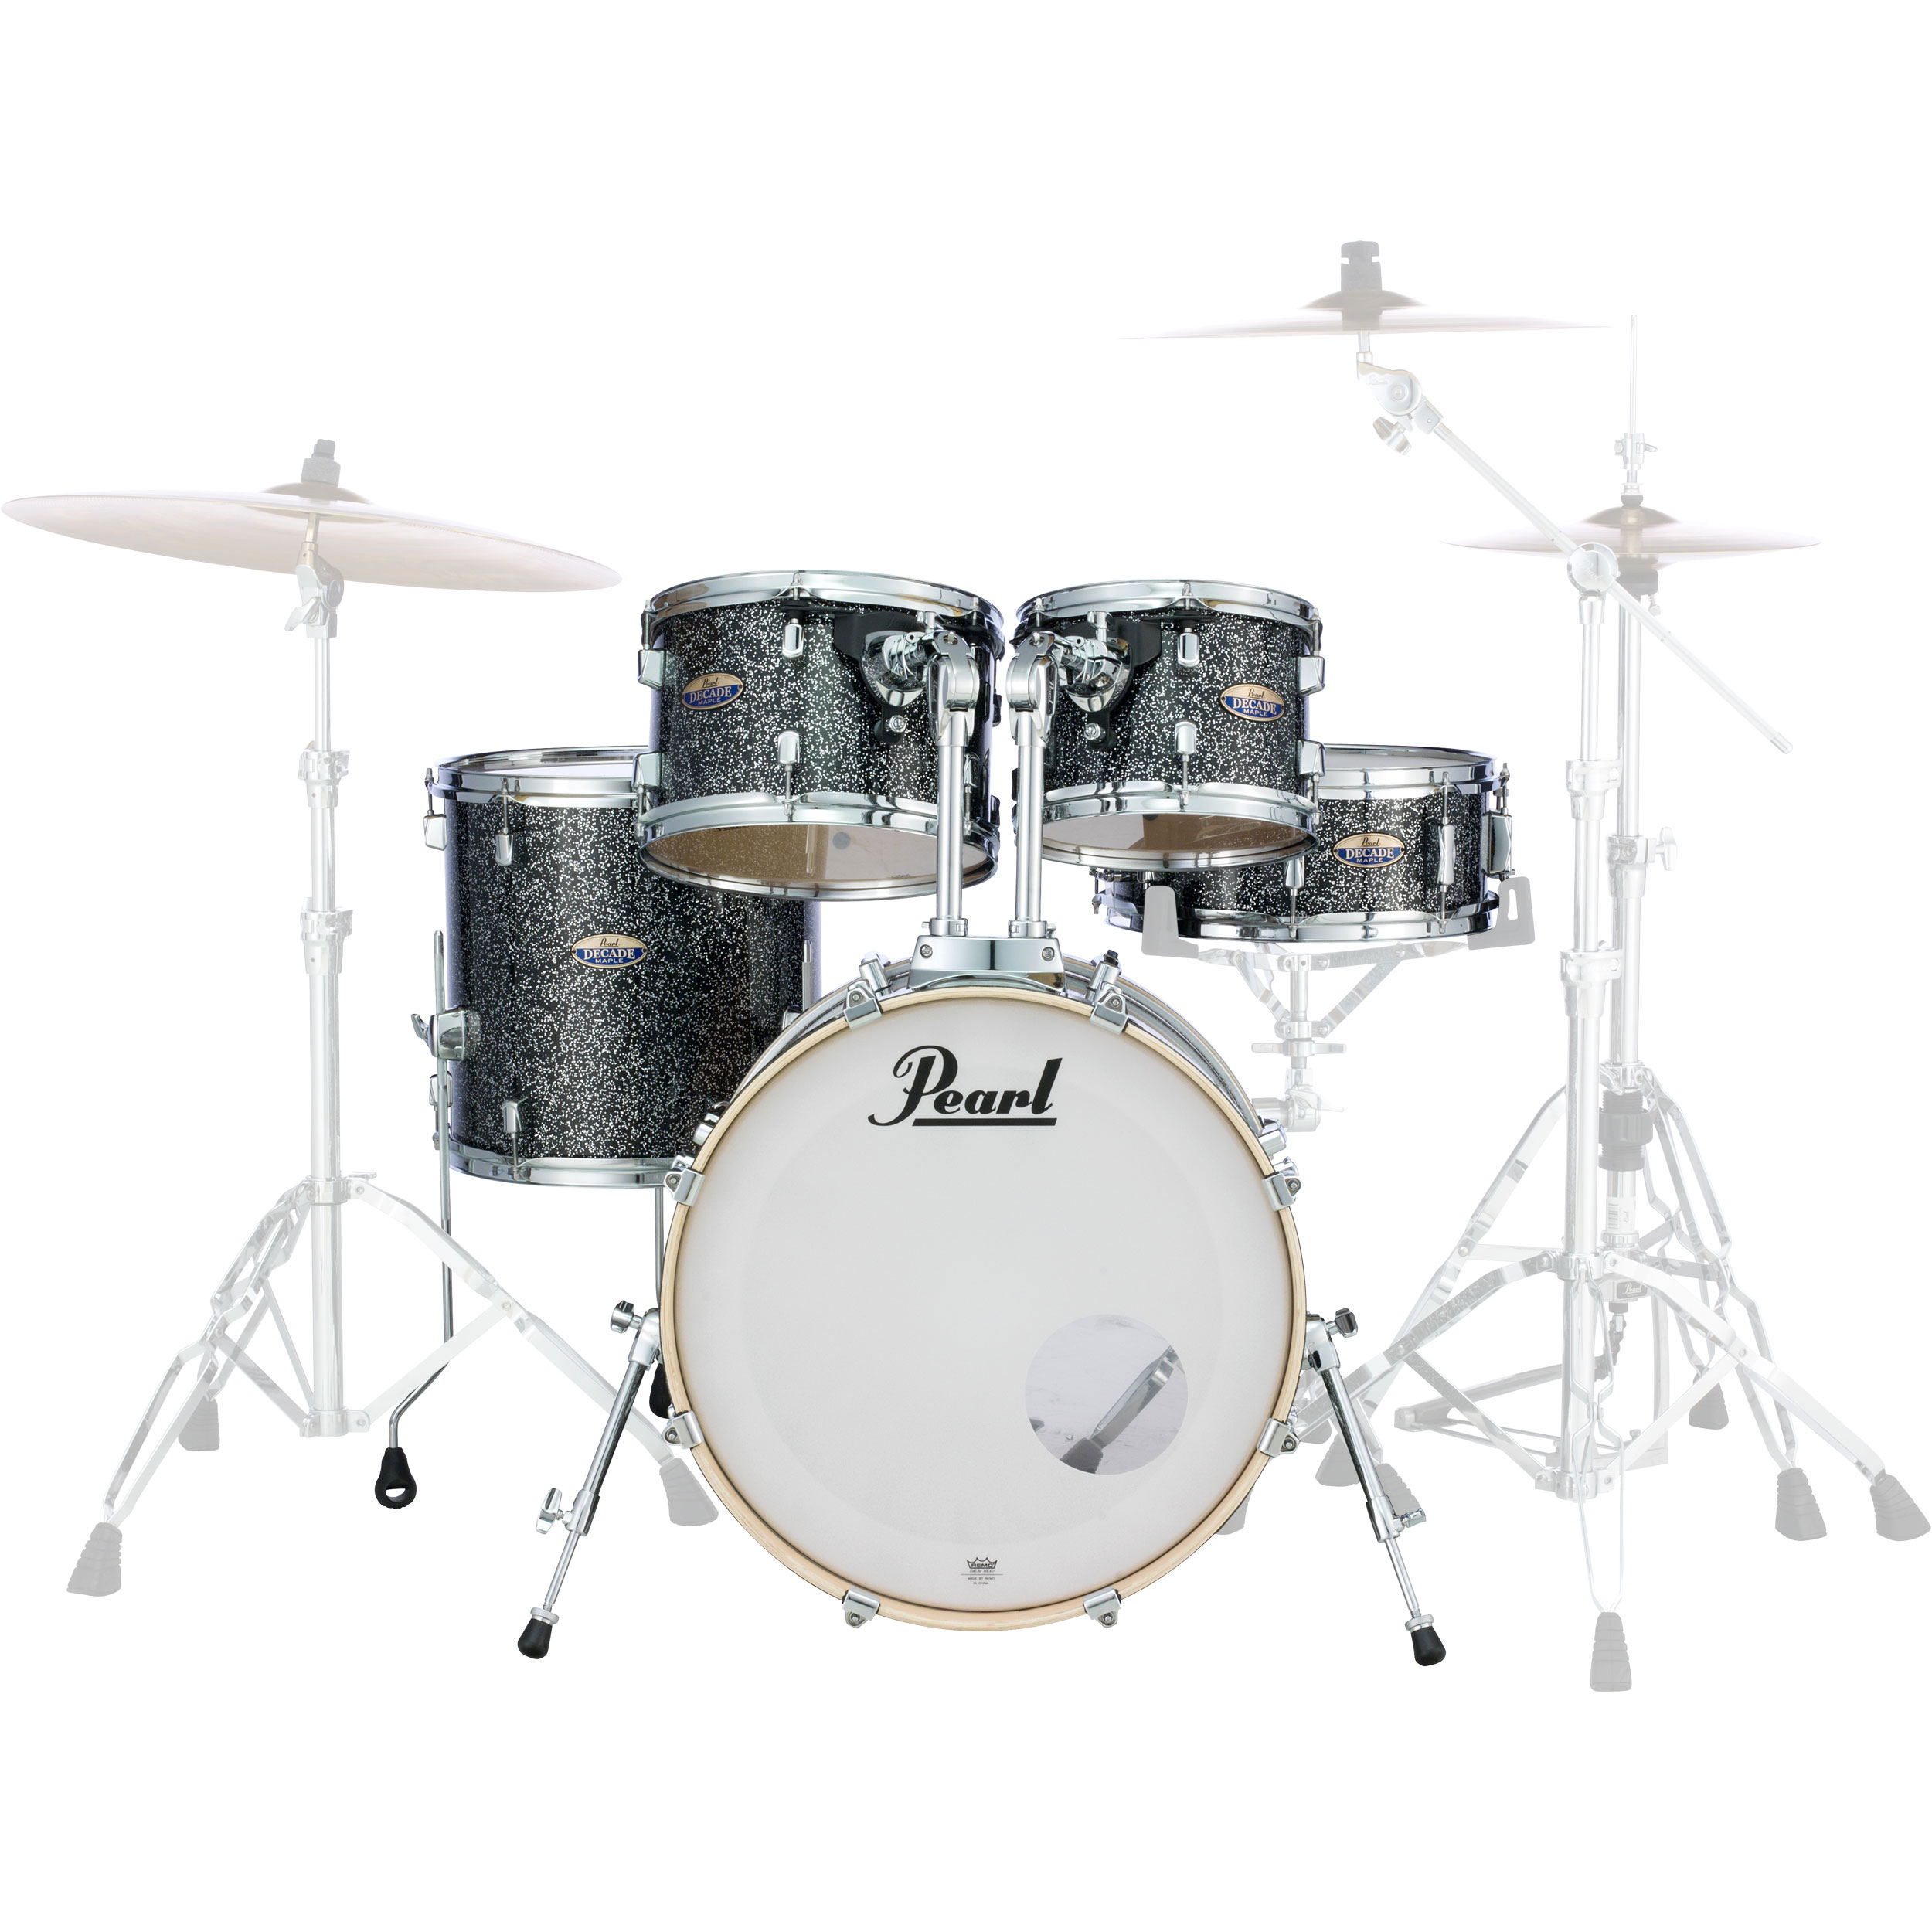 Pearl Decade Maple 5 Piece Drum Set Shell Pack 22 Bass 10 12 16 Toms 14 Snare In Wrap Finish